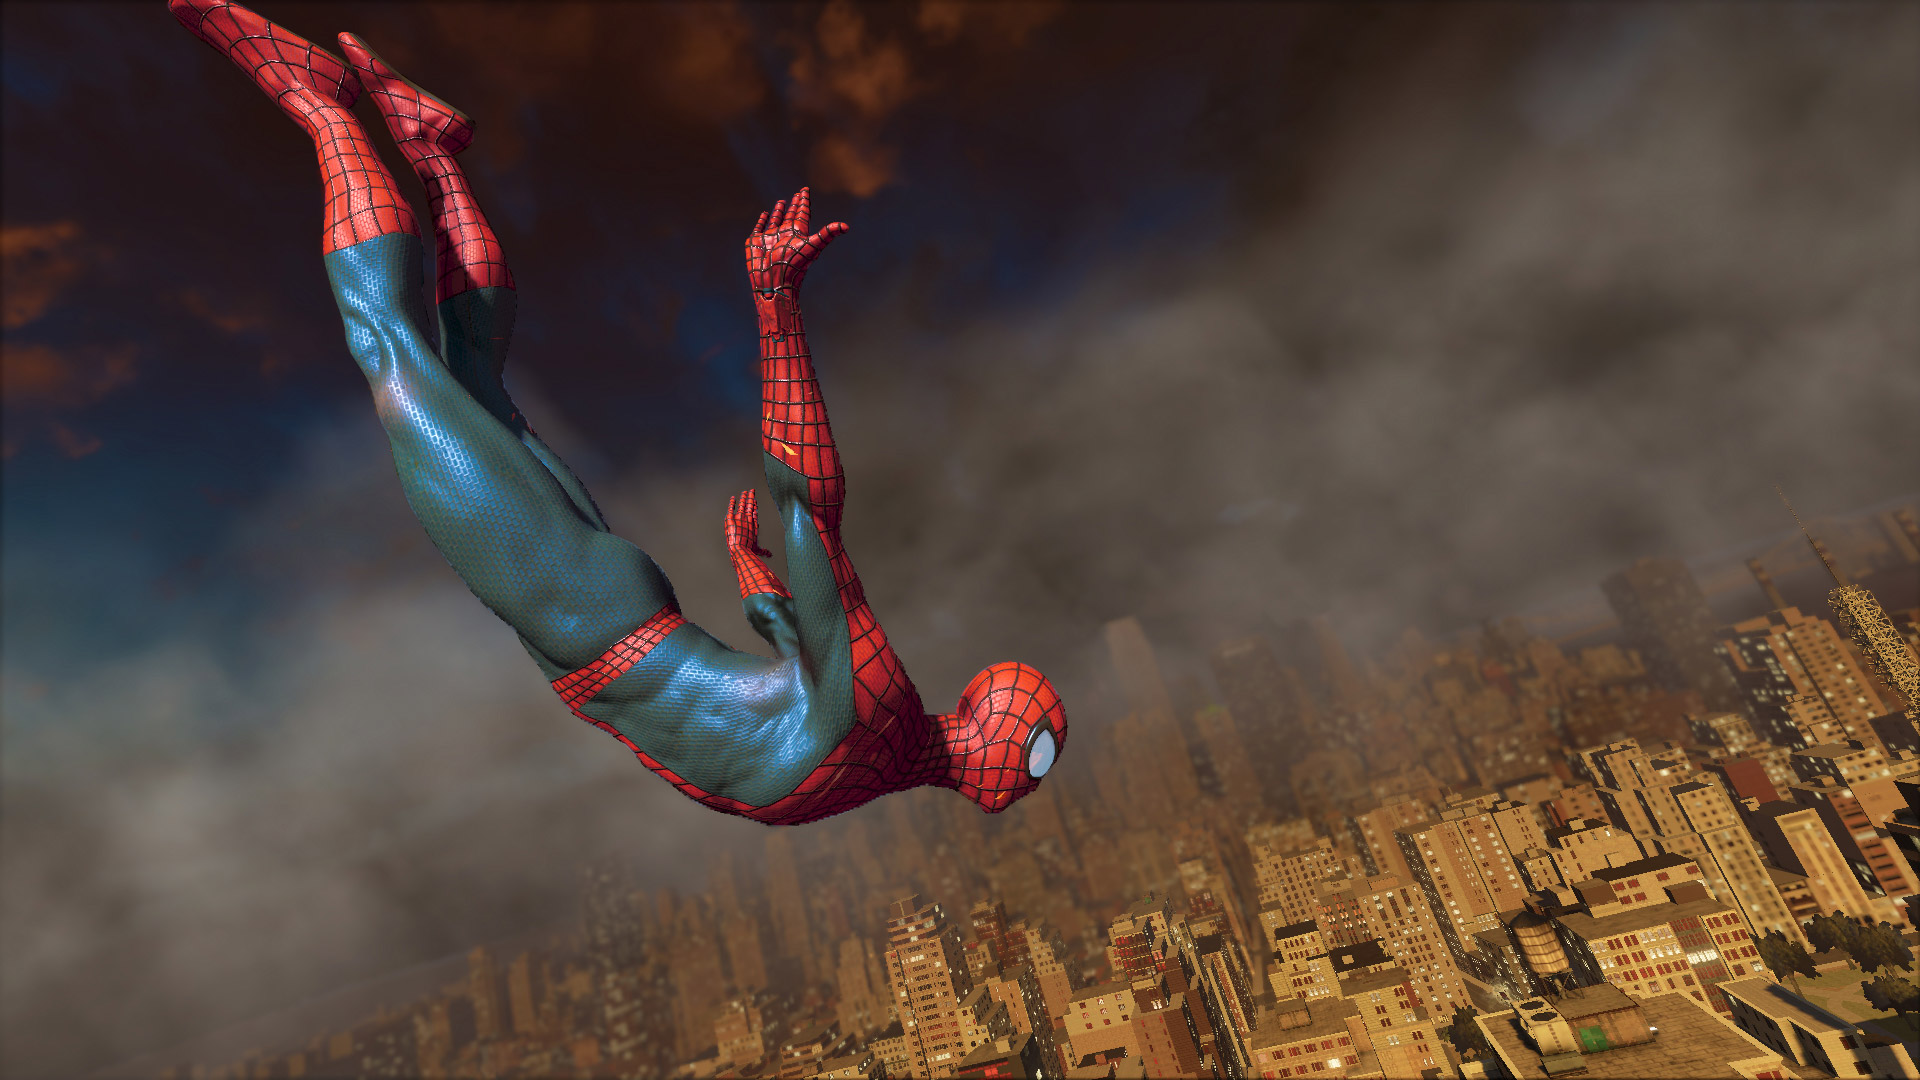 The Amazing Spider-Man 2 Wallpaper in 1920x1080